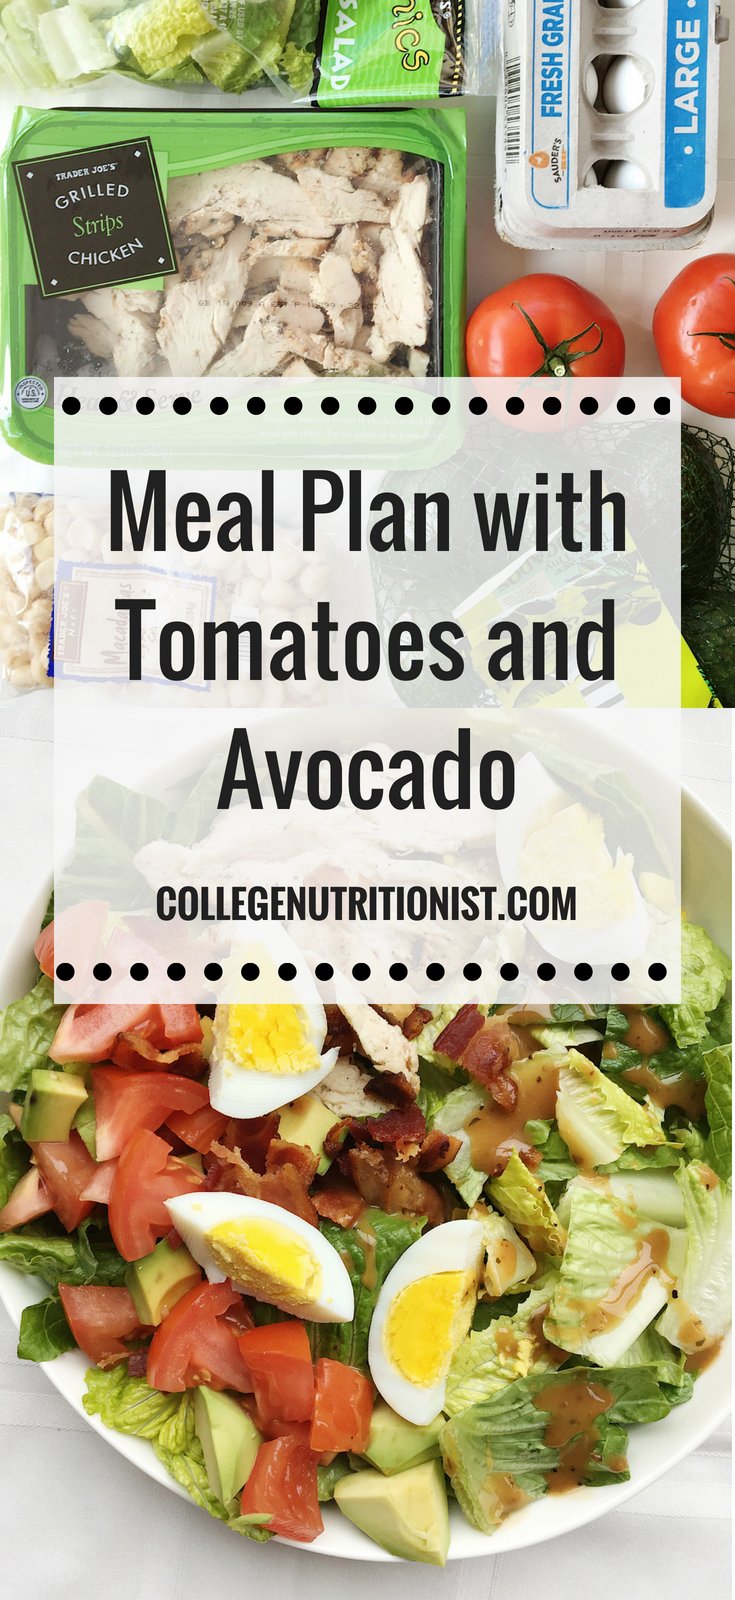 Meal Plan with Tomatoes and Avocado.png